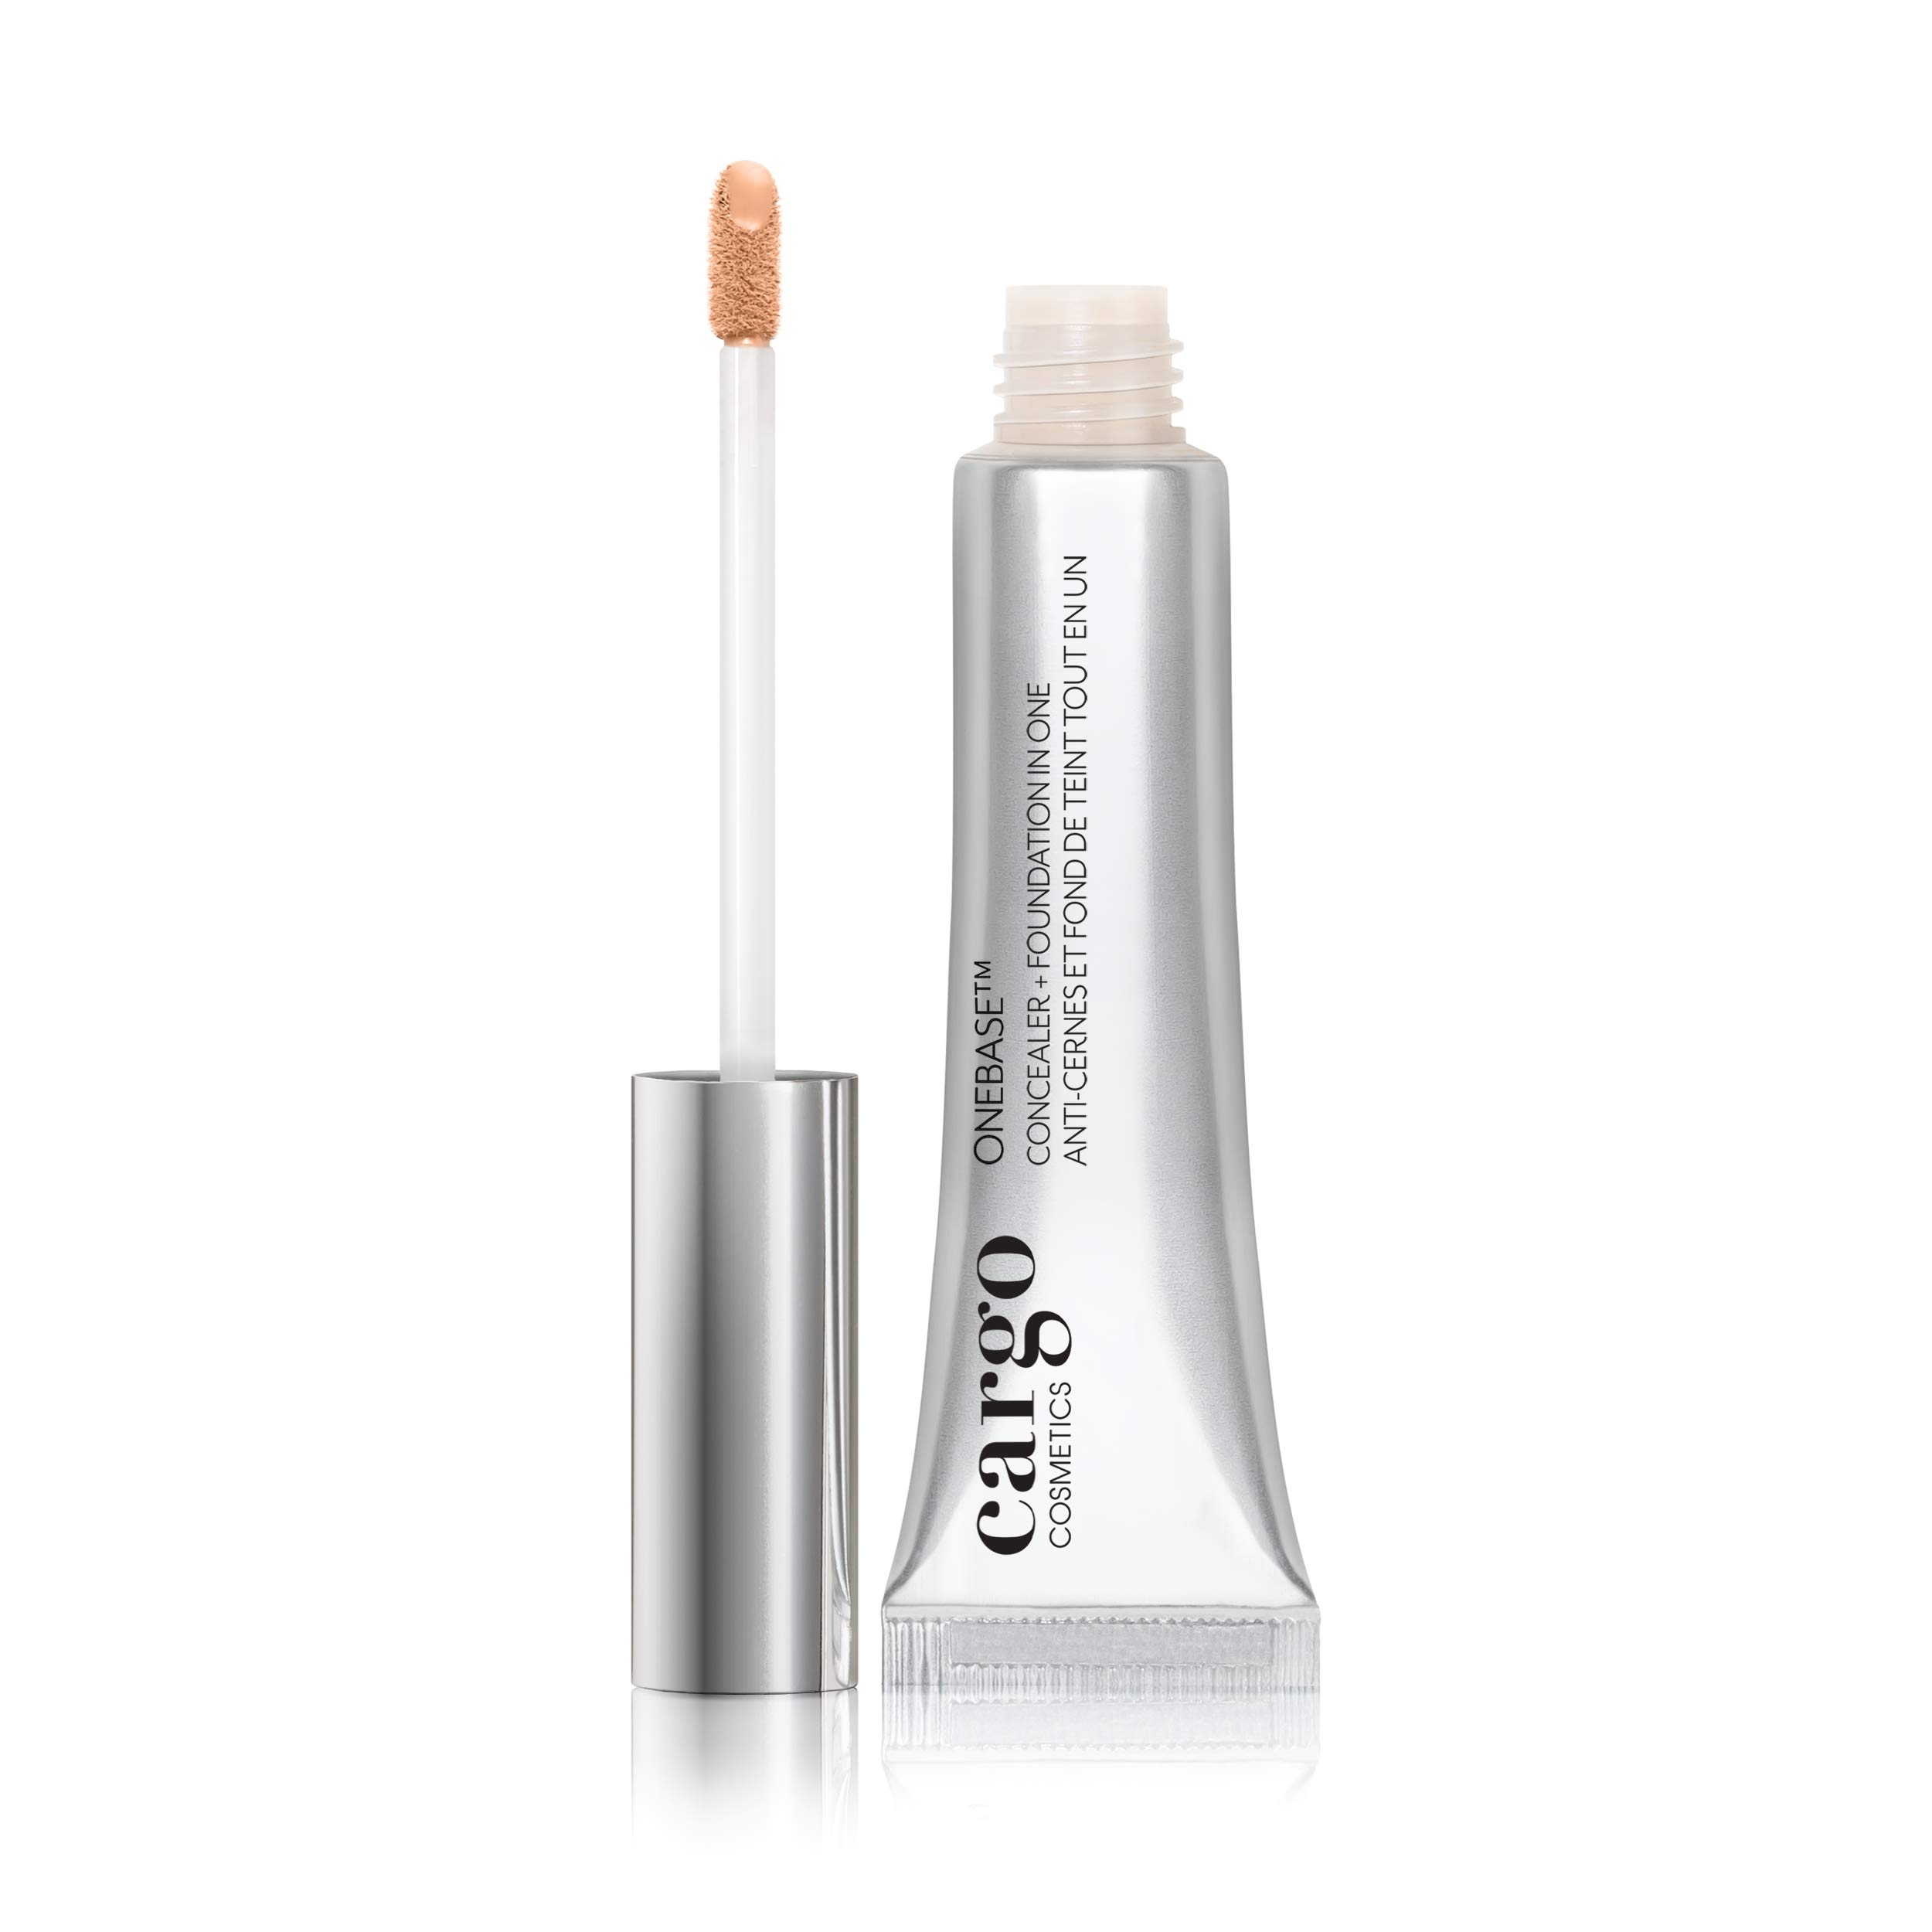 Cargo Cosmetics - OneBase Blendable Concealer + Foundation in One, Full Coverage, Under Eye Concealer, Under Eye Coverage, 02 by Cargo